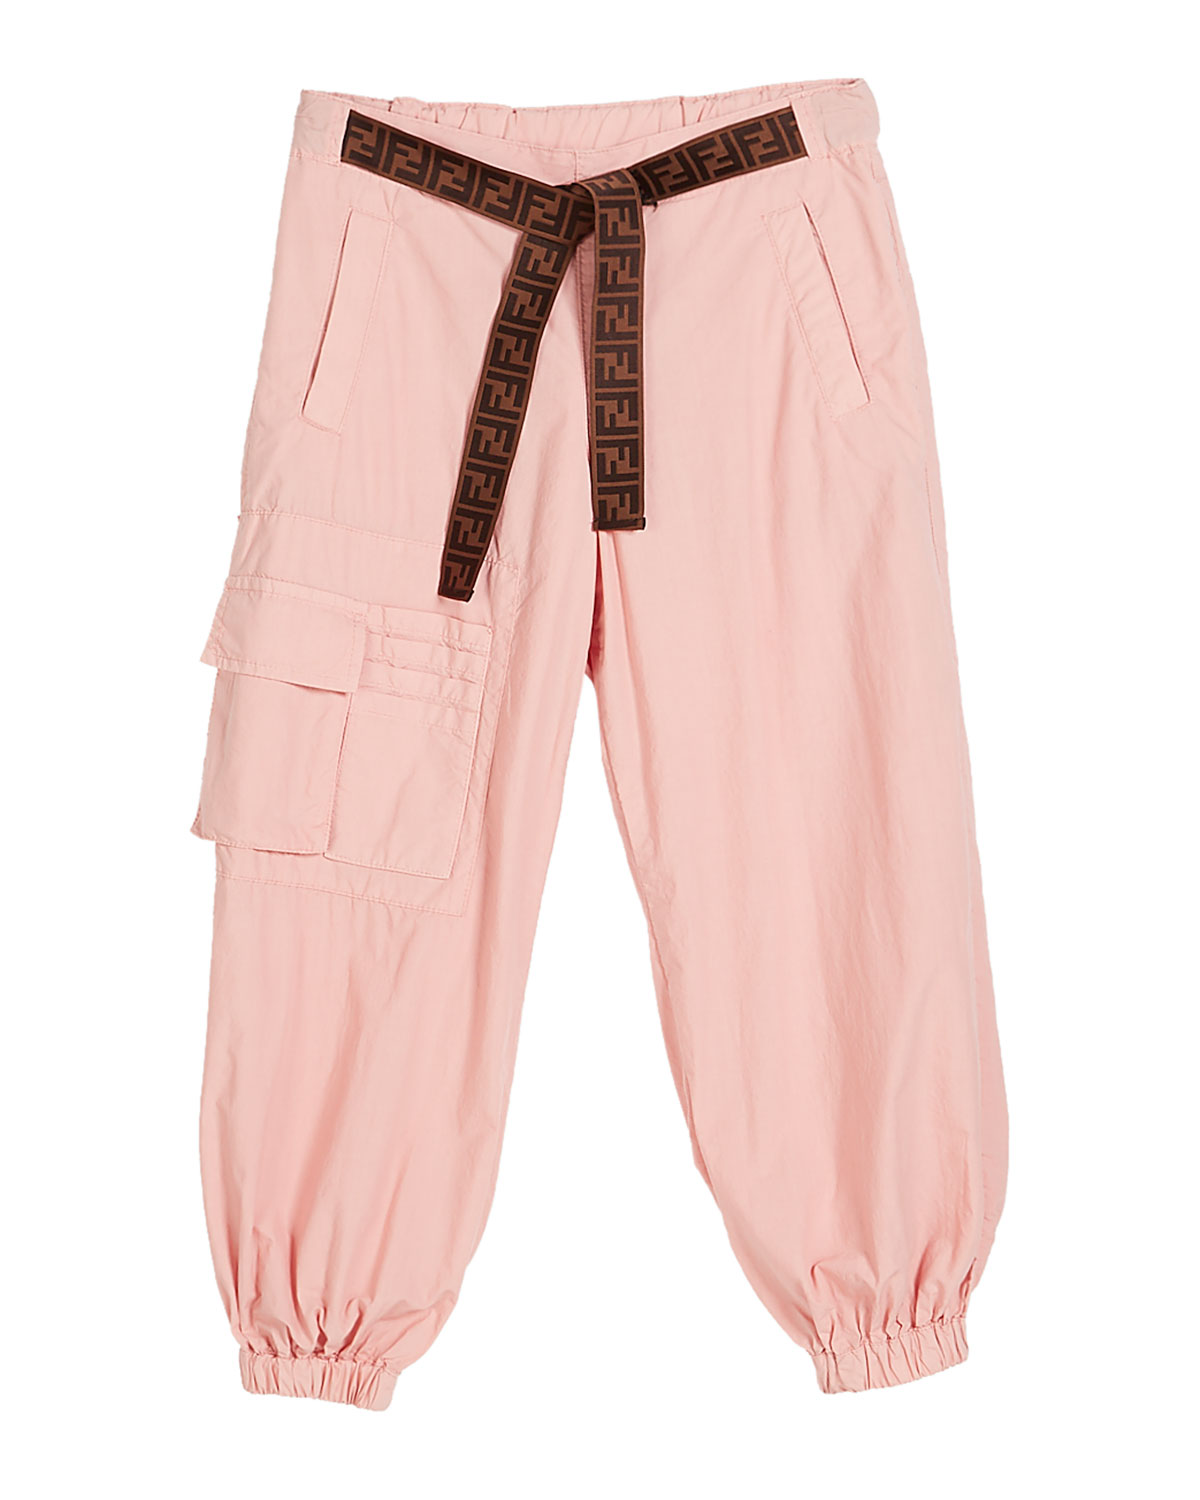 Fendi GIRL'S JOGGER PANTS W/ TIE LOGO BELT